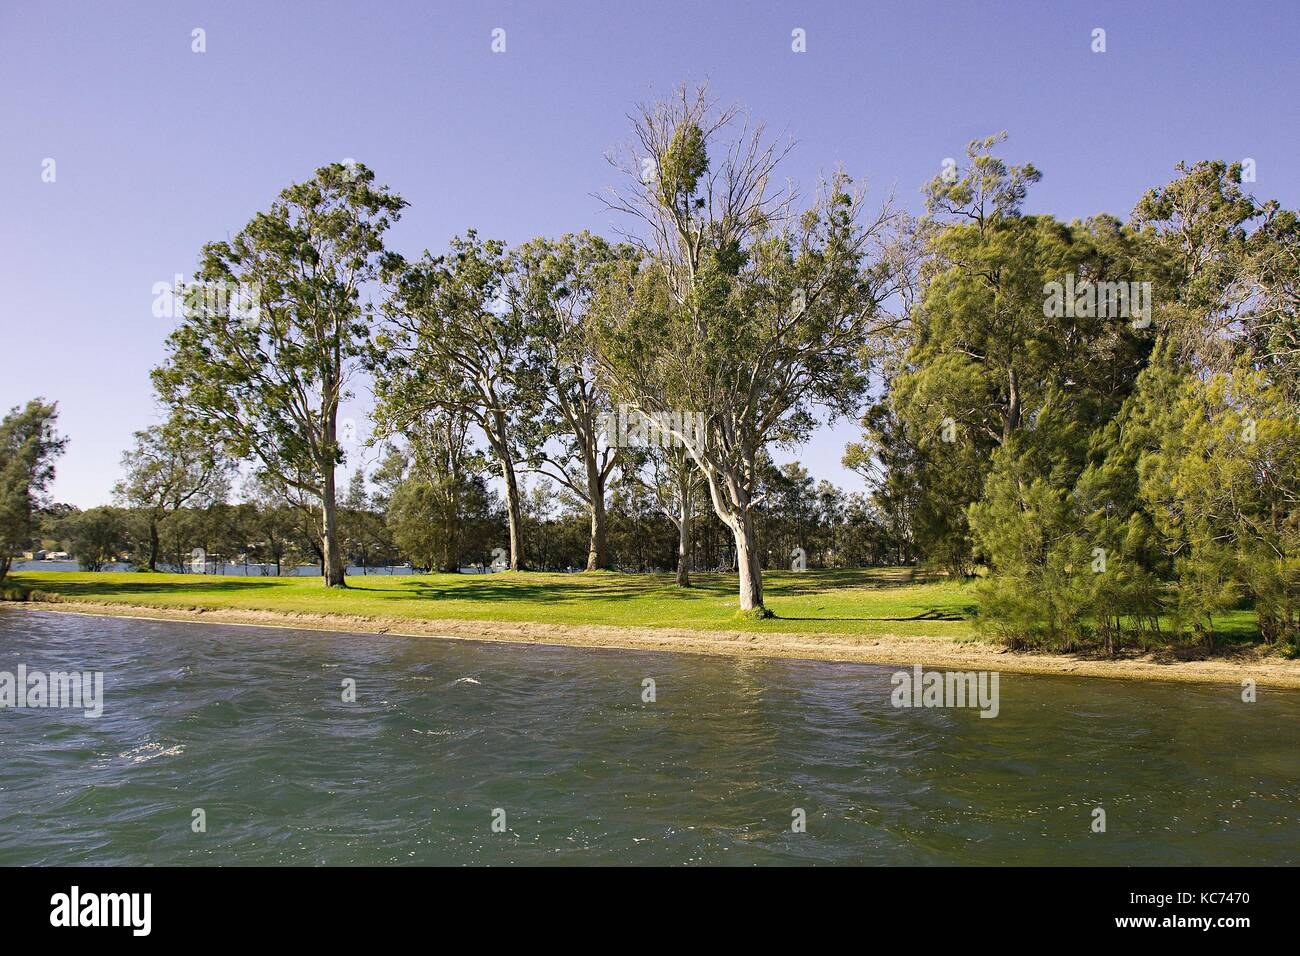 Rathmines Park Landscape with a tree studed horizon over water. Photographed at Lake Macquarie,  Australia. - Stock Image